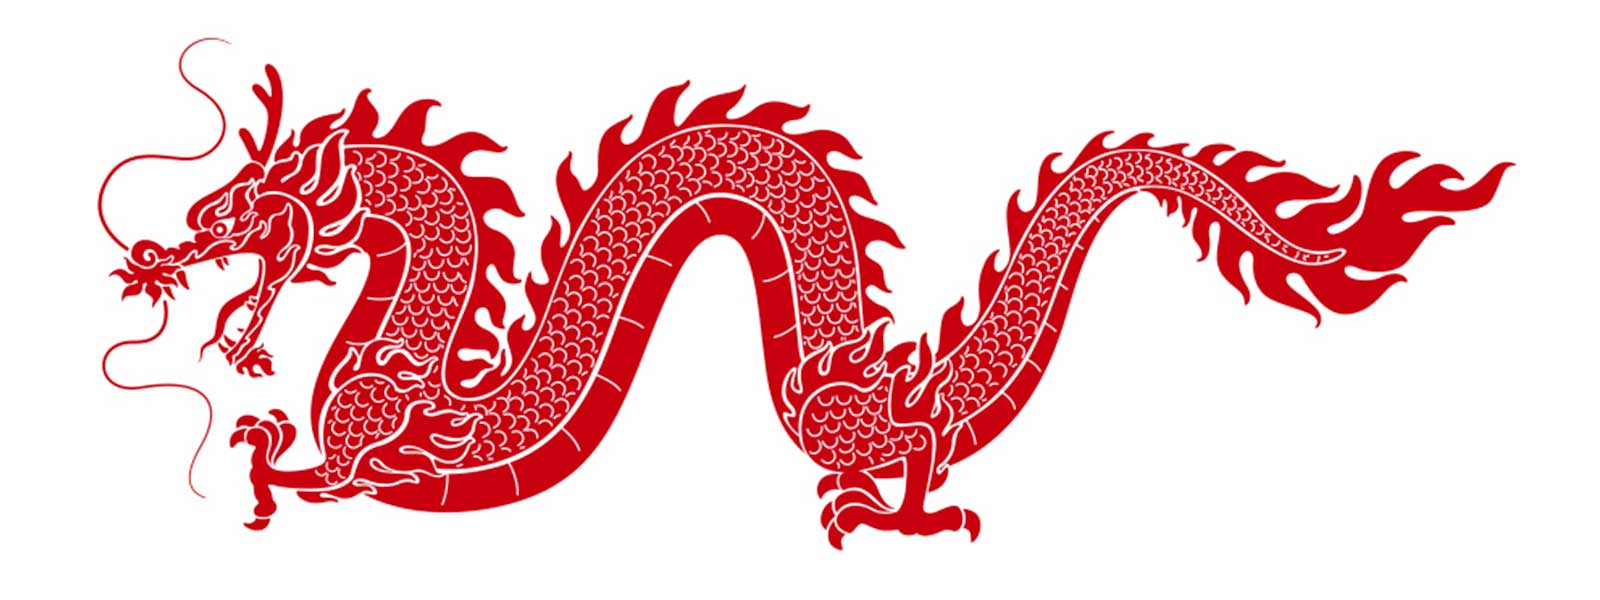 Image Dragon Chinois Rouge